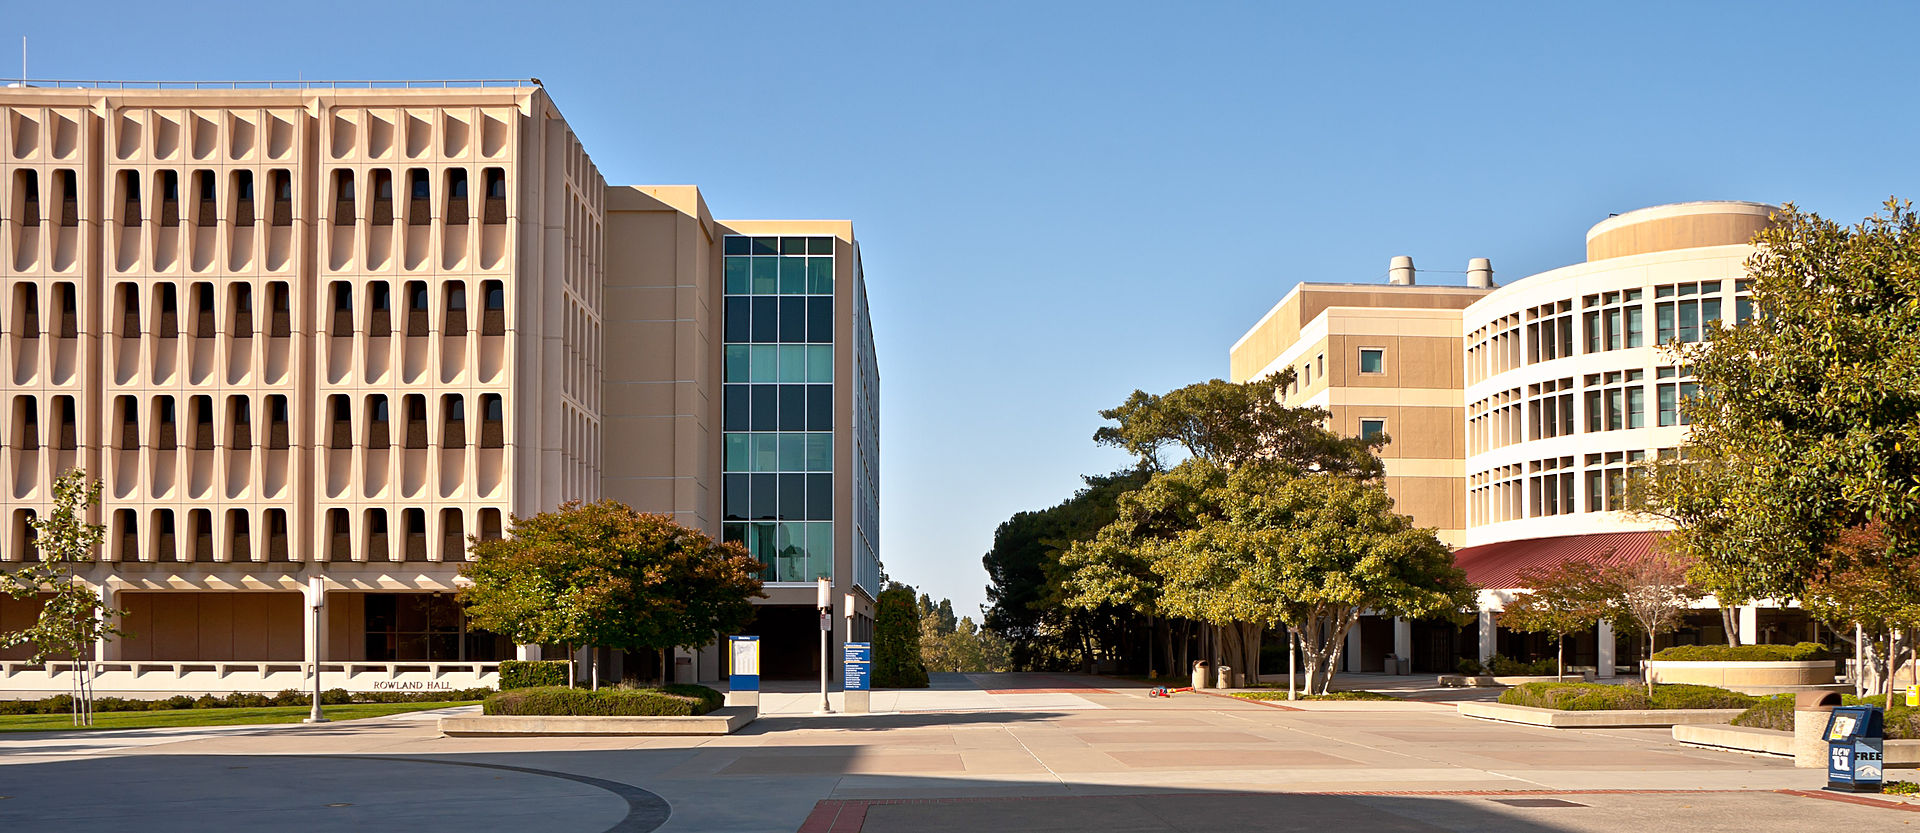 UC Irvine Science Plaza.